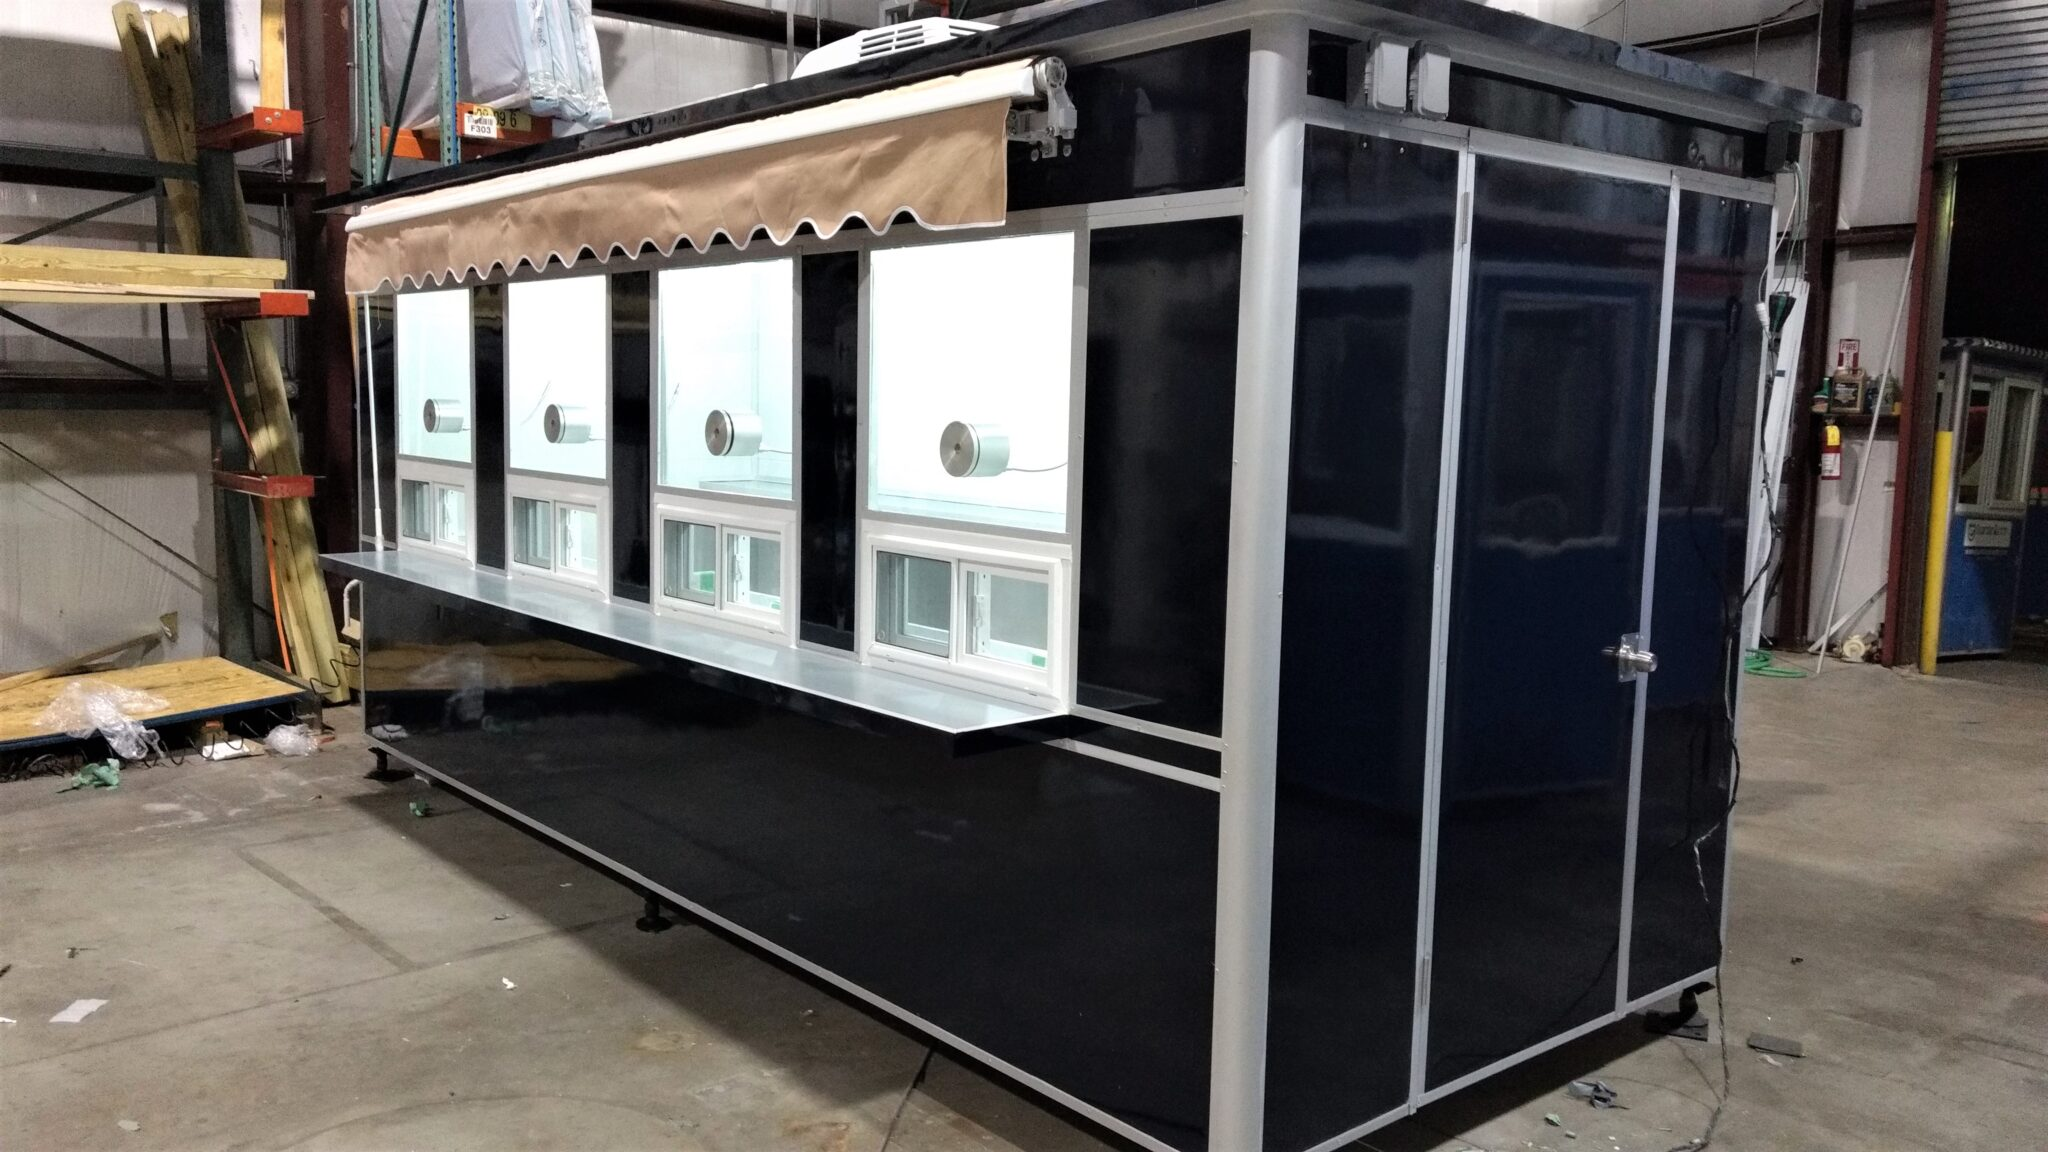 6x16 Ticket Booth in Lynchburg, VA with Awning, Ticket Transaction Windows, Speakers, Breaker Panel Box